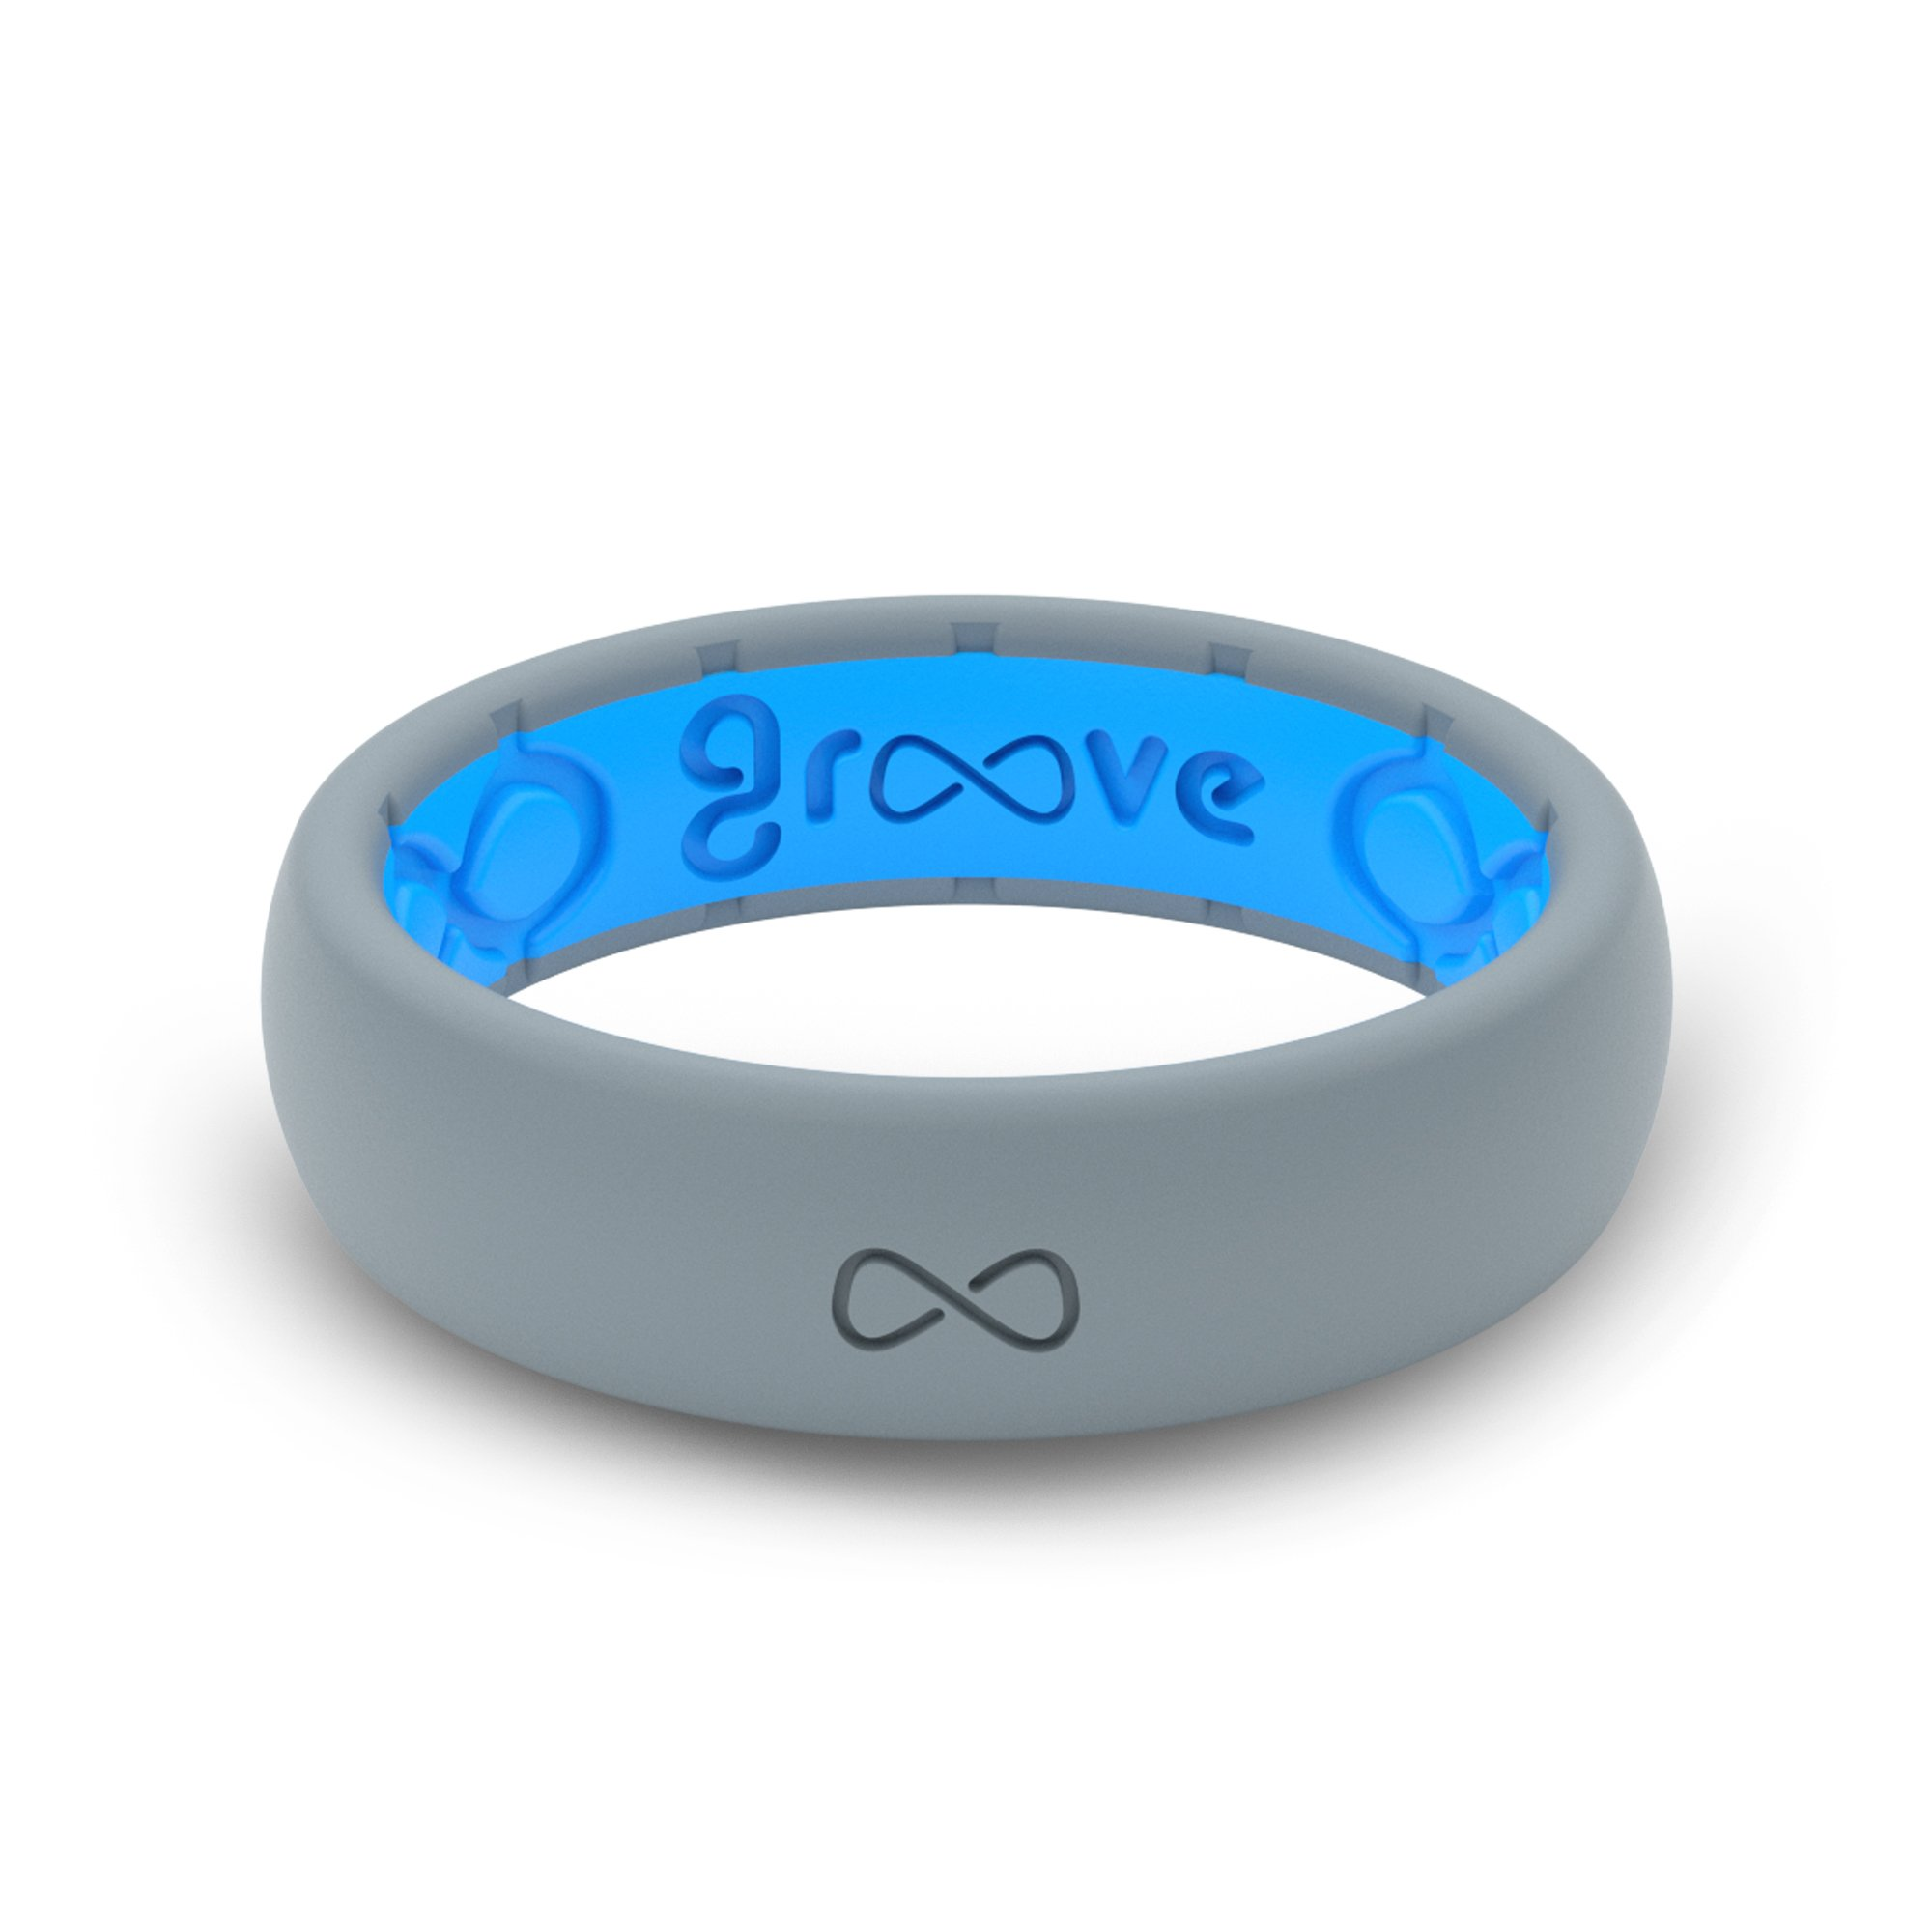 Groove Life - Groove Ring The Worlds First Breathable Silicone Ring Thin (Storm Grey/Glacier Blue) (Size 5)